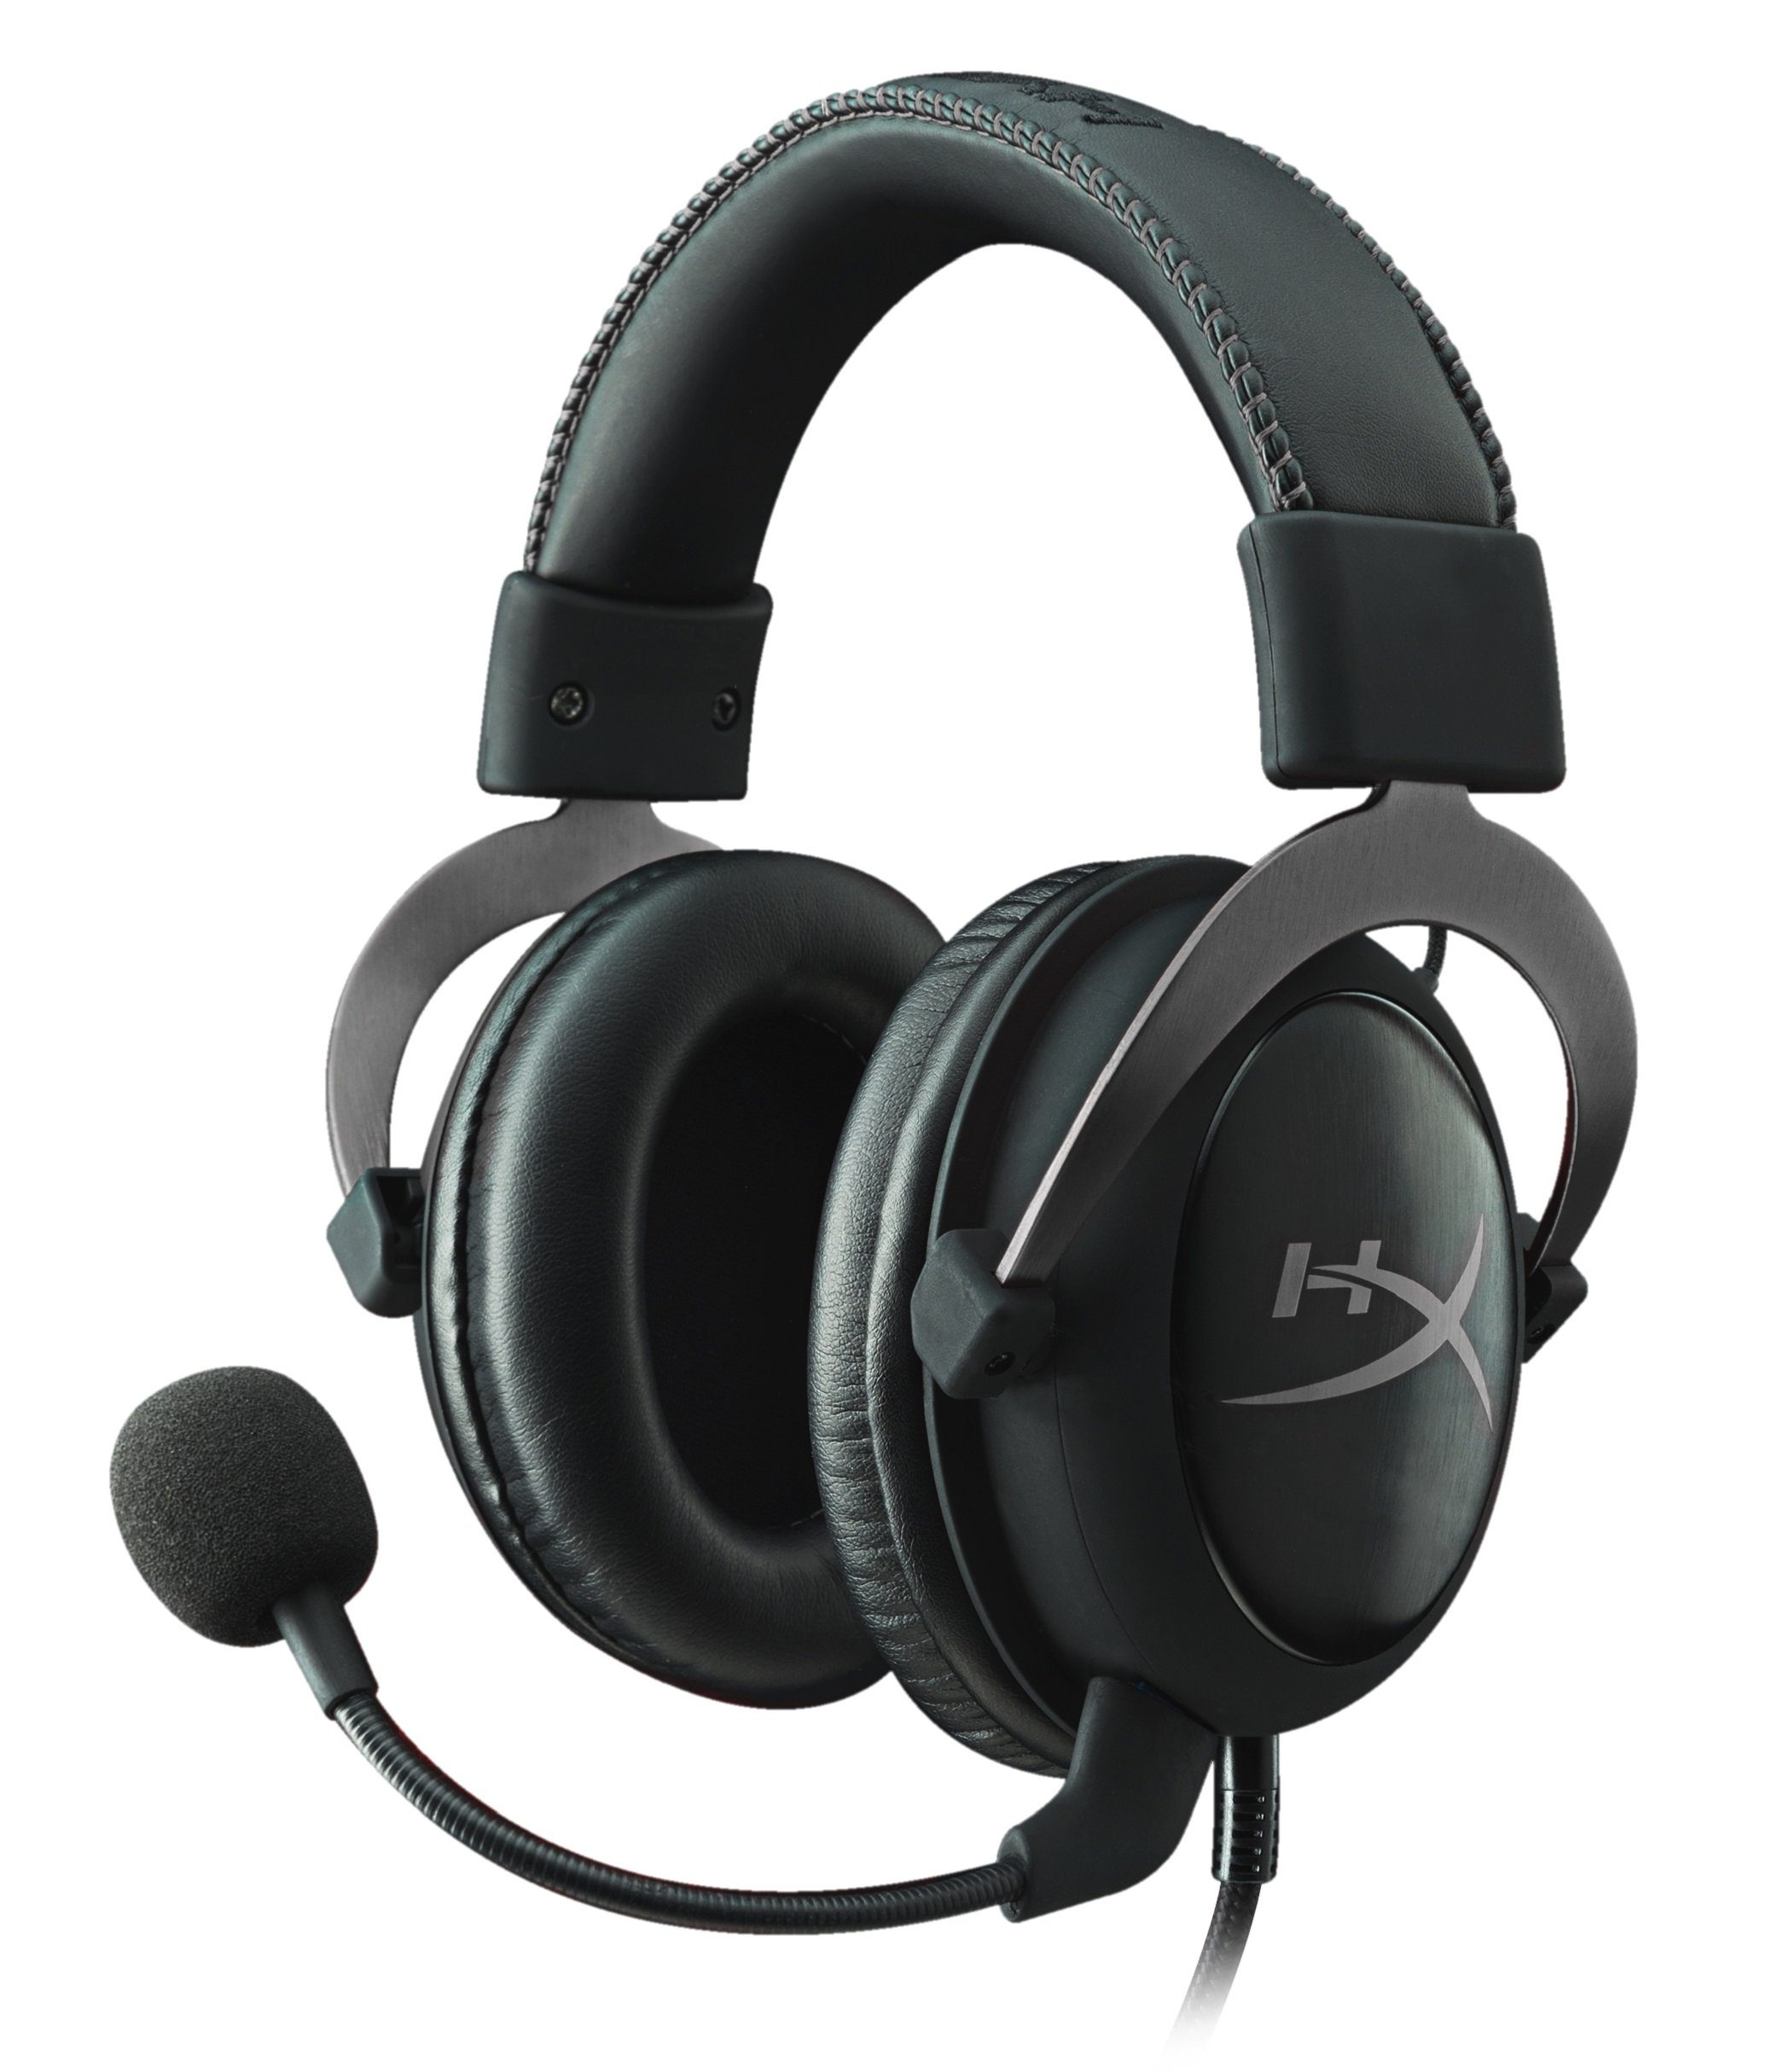 HyperX Cloud II Gaming Headset - 7.1 Surround Sound - Memory Foam Ear Pads - Durable Aluminum Frame - Works with PC, PS4, PS4 PRO, Xbox One, Xbox One S - Gun Metal (KHX-HSCP-GM) (Renewed) by HyperX